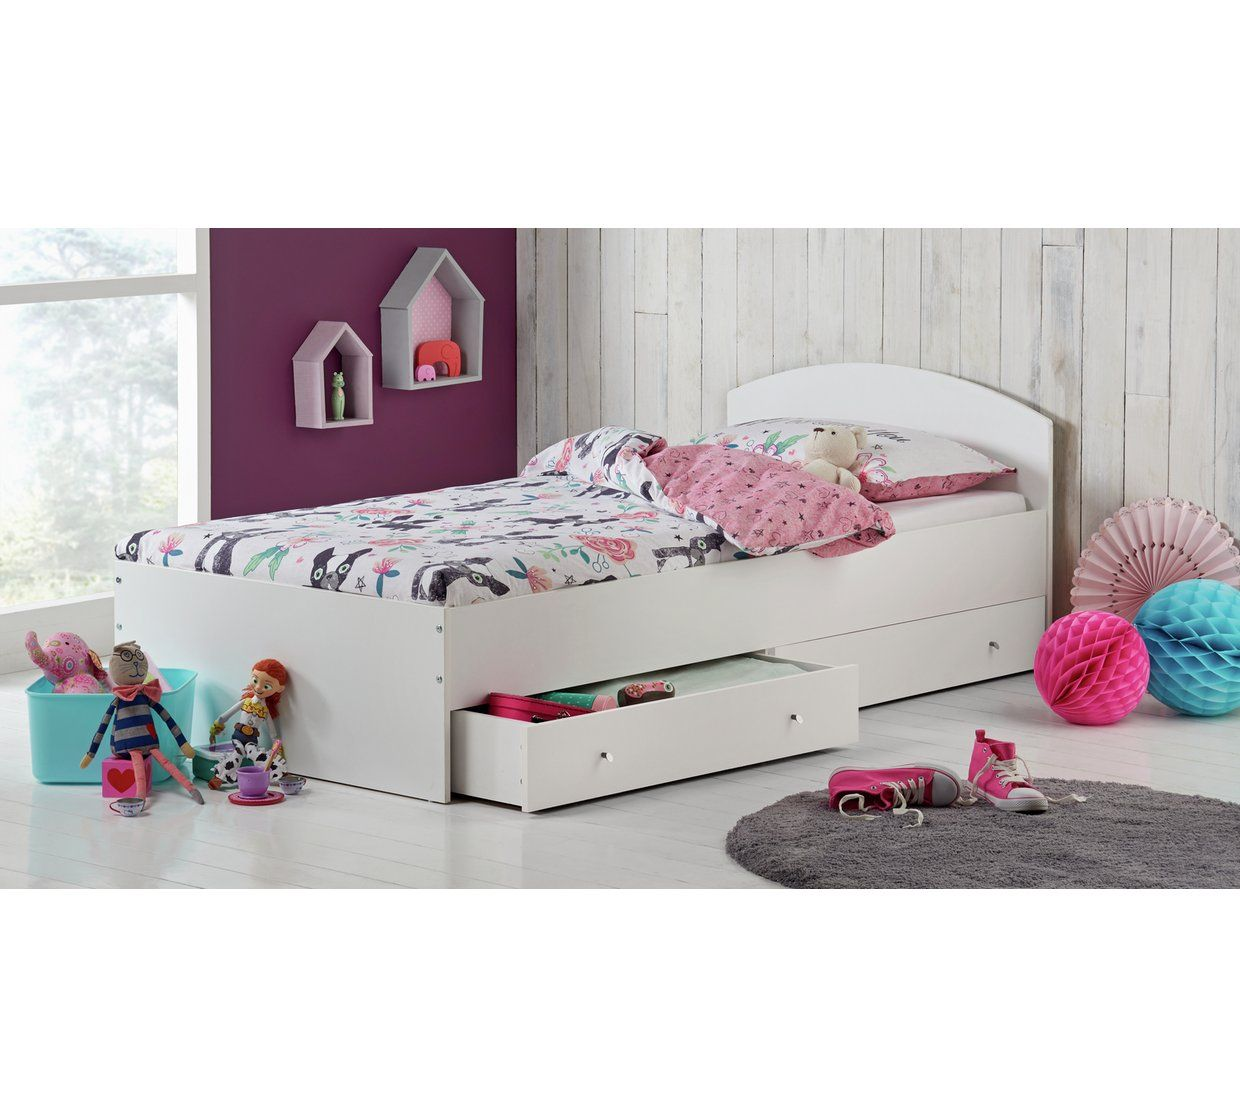 Buy Home Kids Malibu Single Bed Frame With Mattress White At Argos Co Uk Your Online Shop For Children Bed